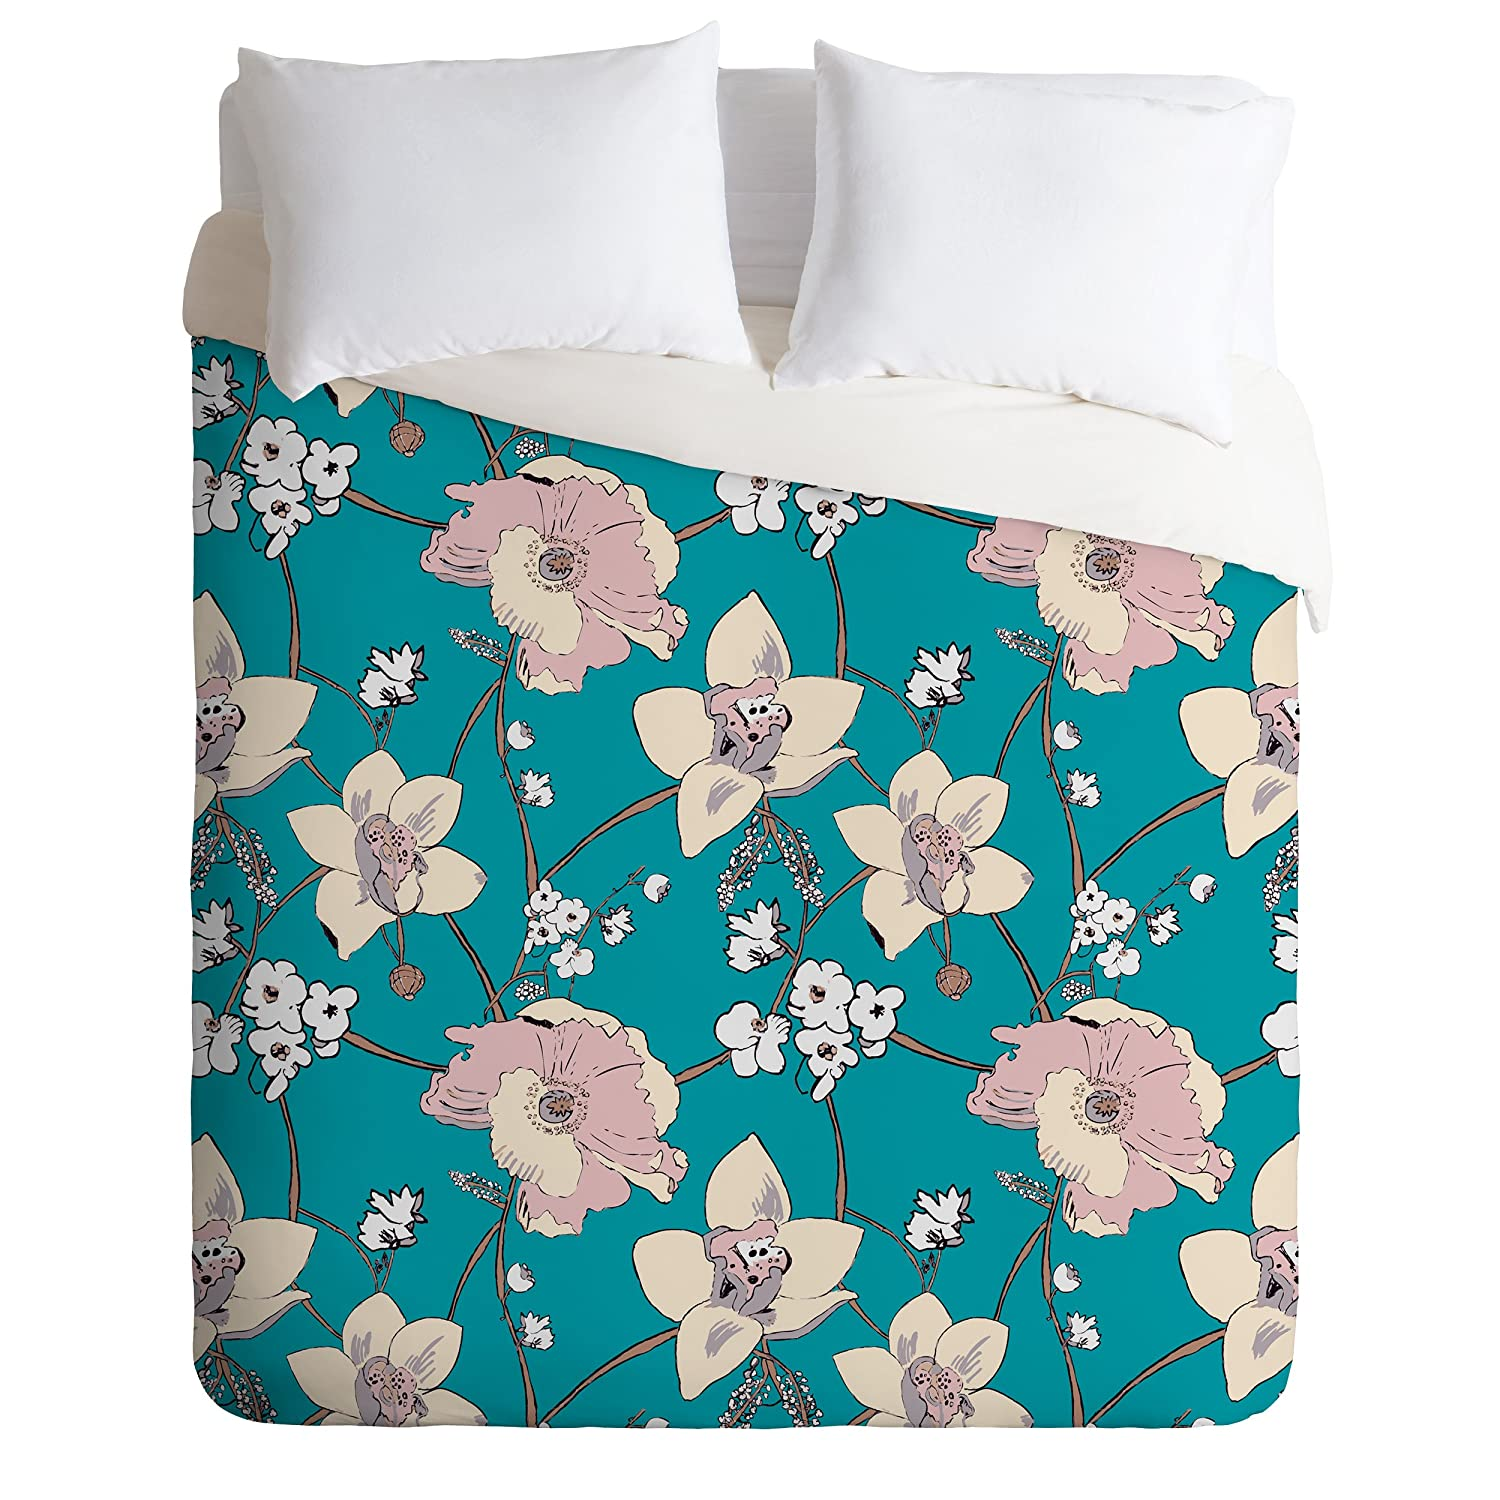 Deny Designs Rachelle Roberts Painted Poppy In Turquoise Duvet Cover, Queen 50953-dliqun